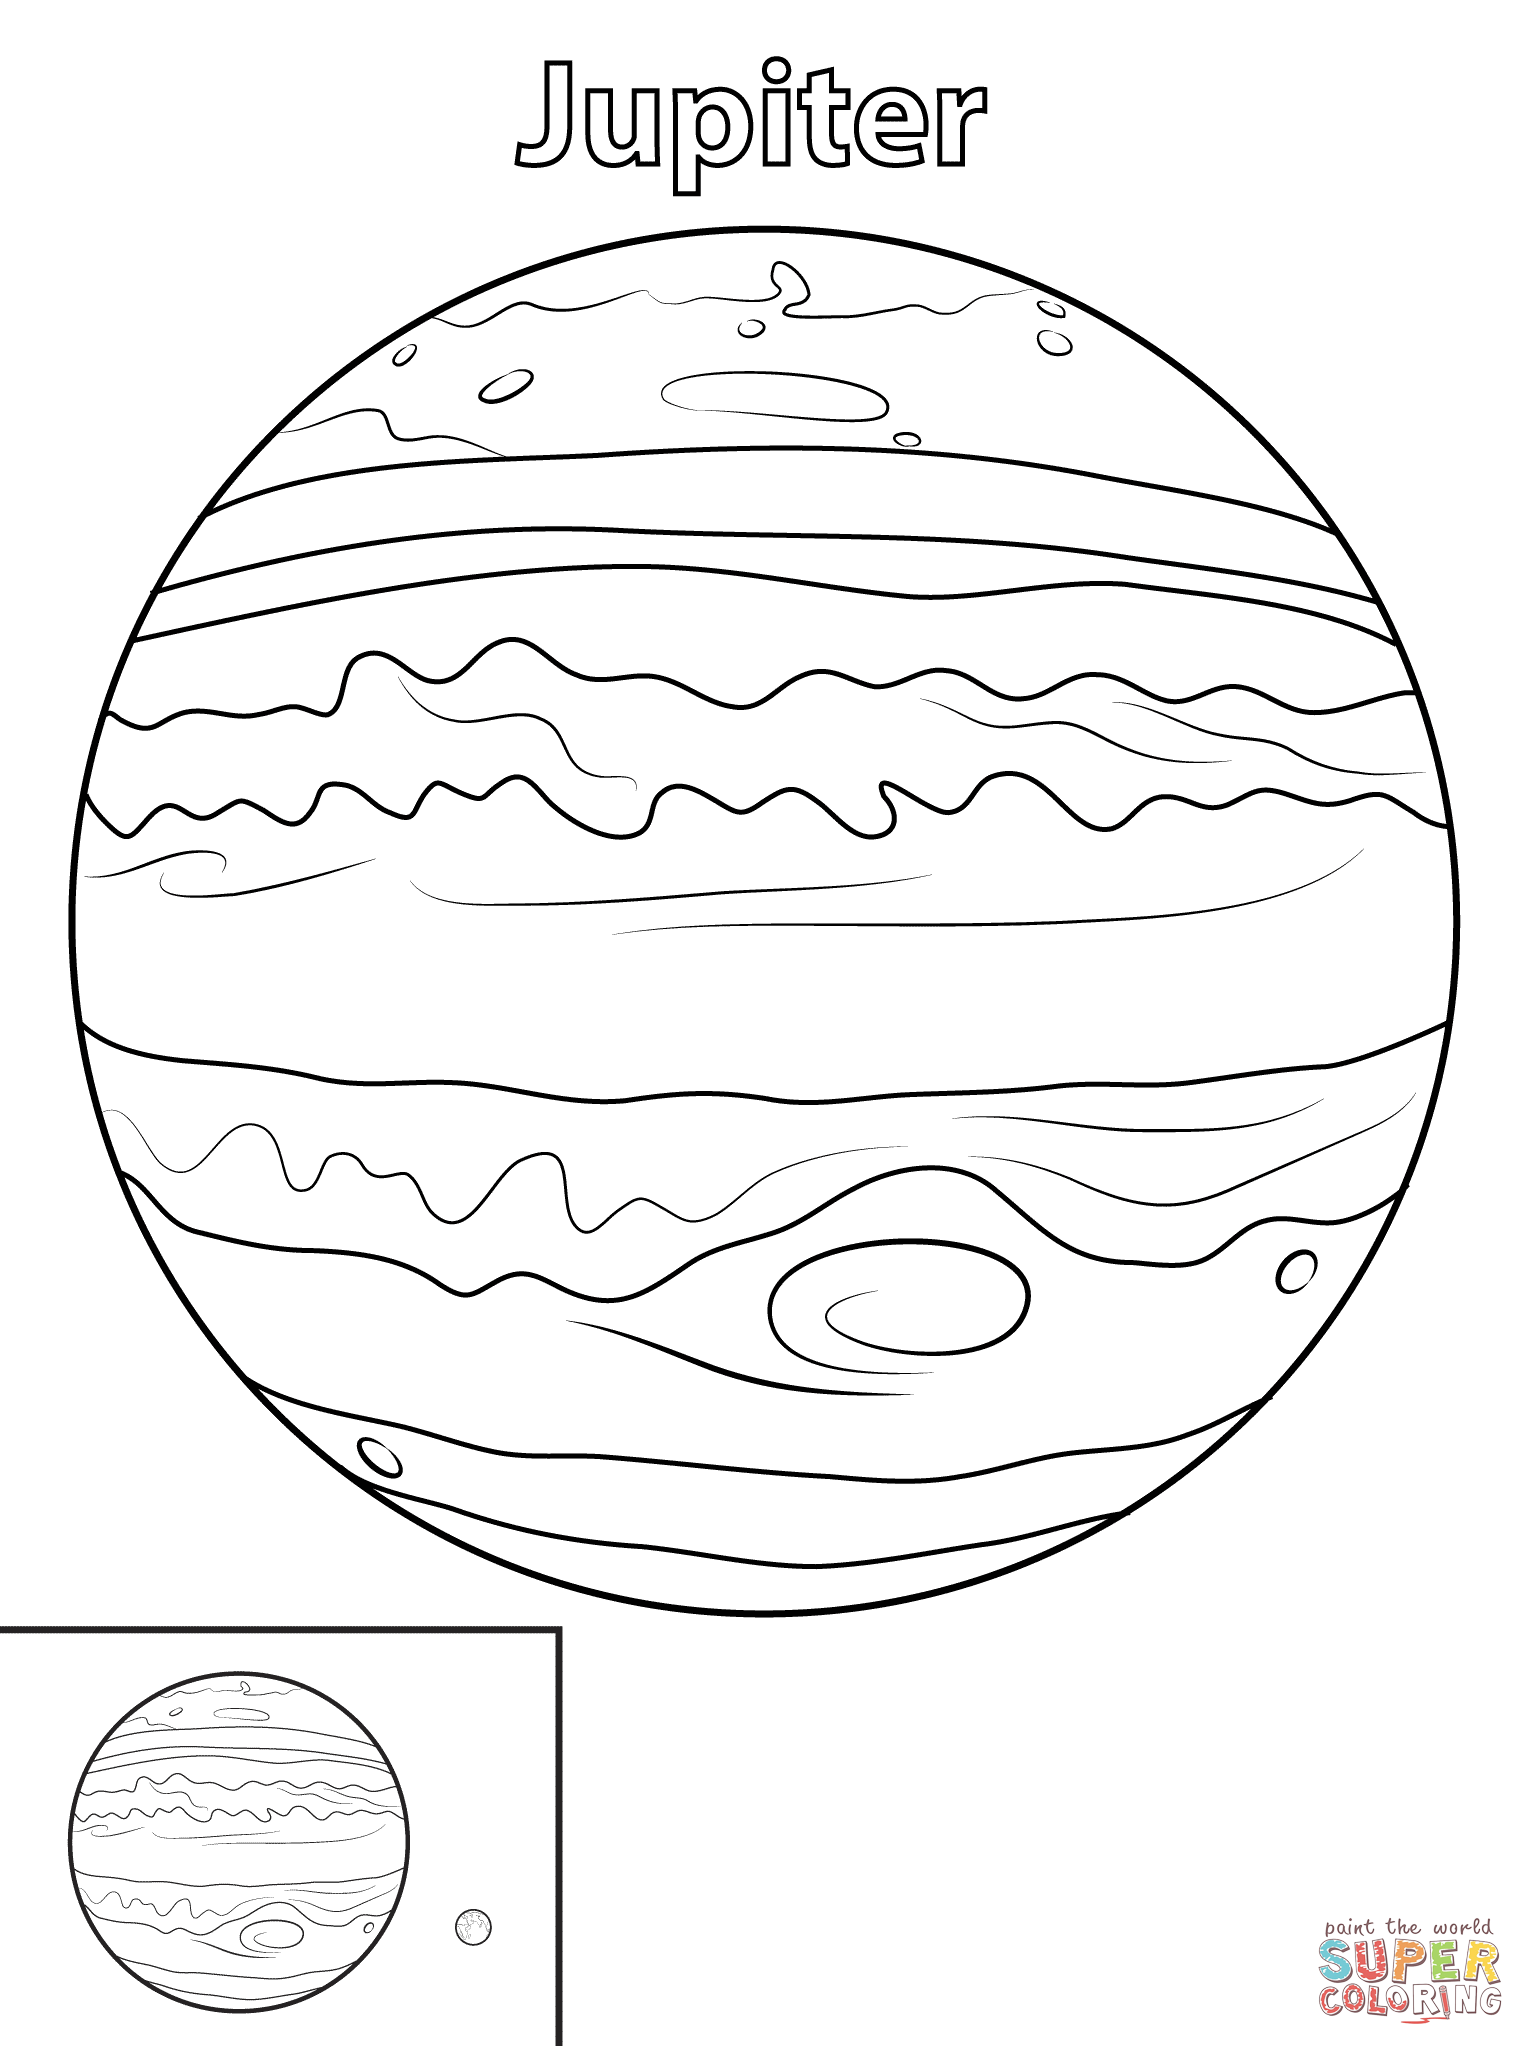 Planet coloring page free. Jupiter clipart color